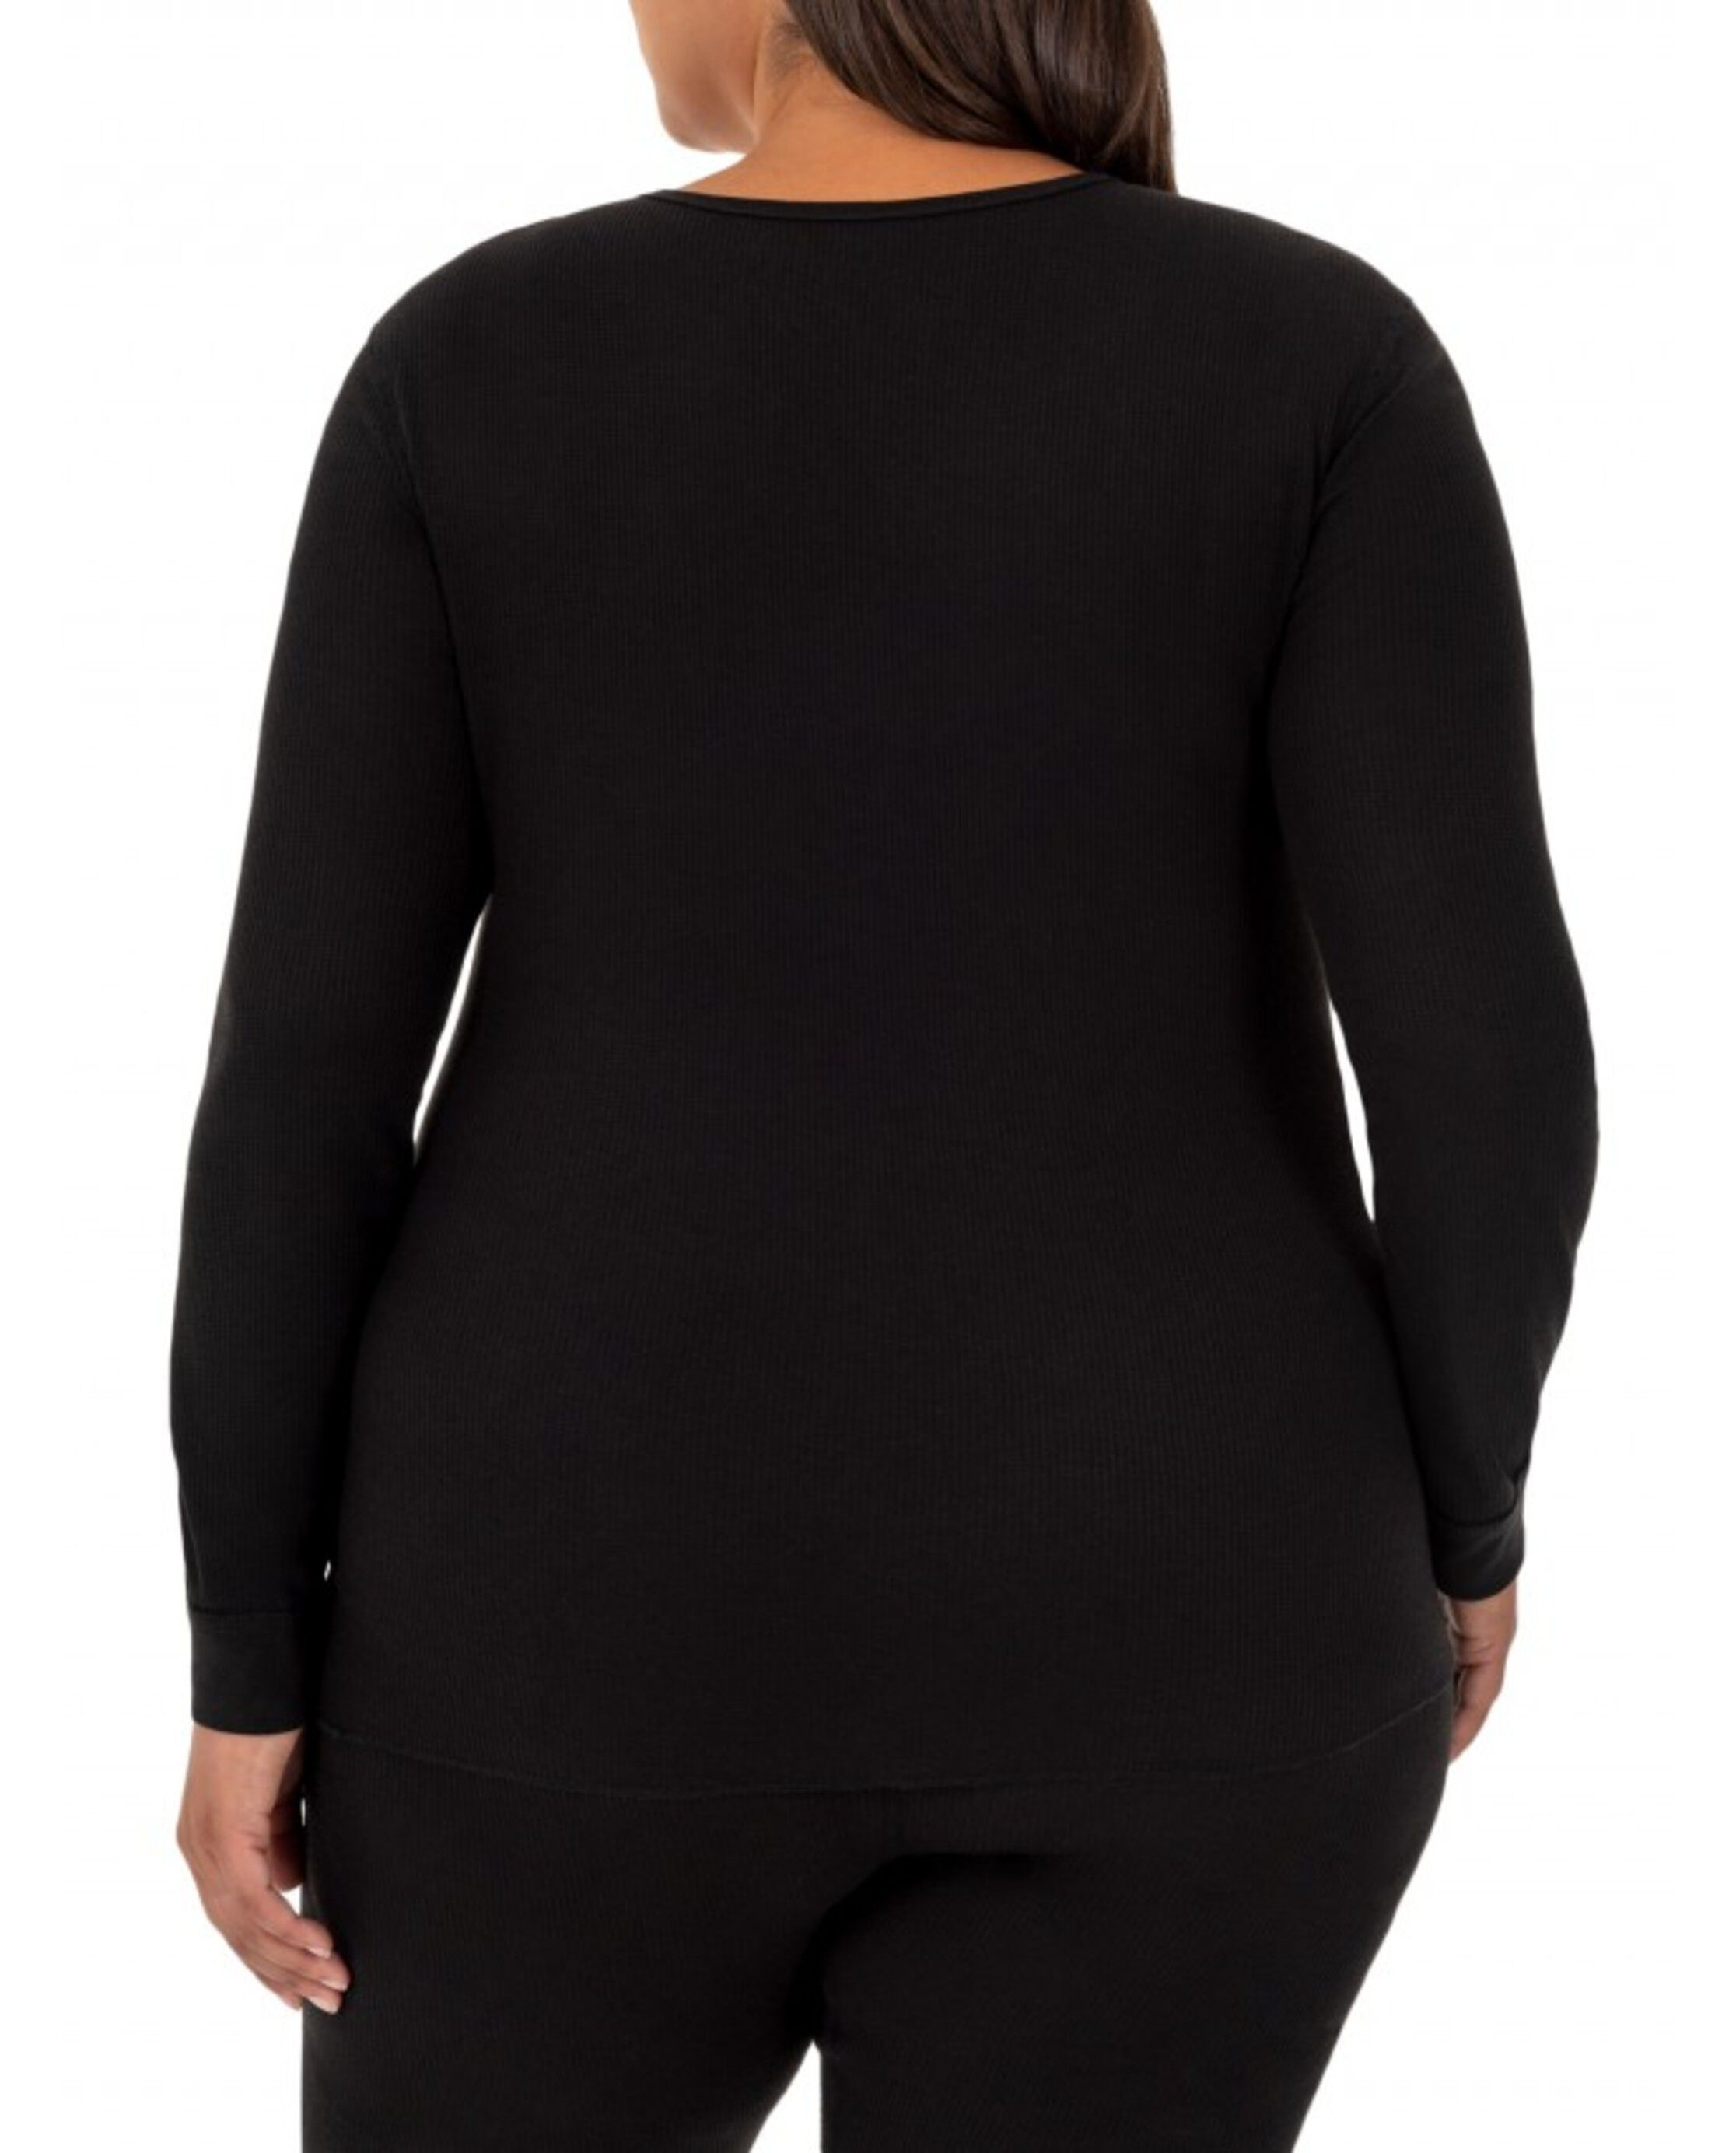 Fruit of the Loom Womens Plus Size Fit for Me Thermal Waffle V-Neck Top